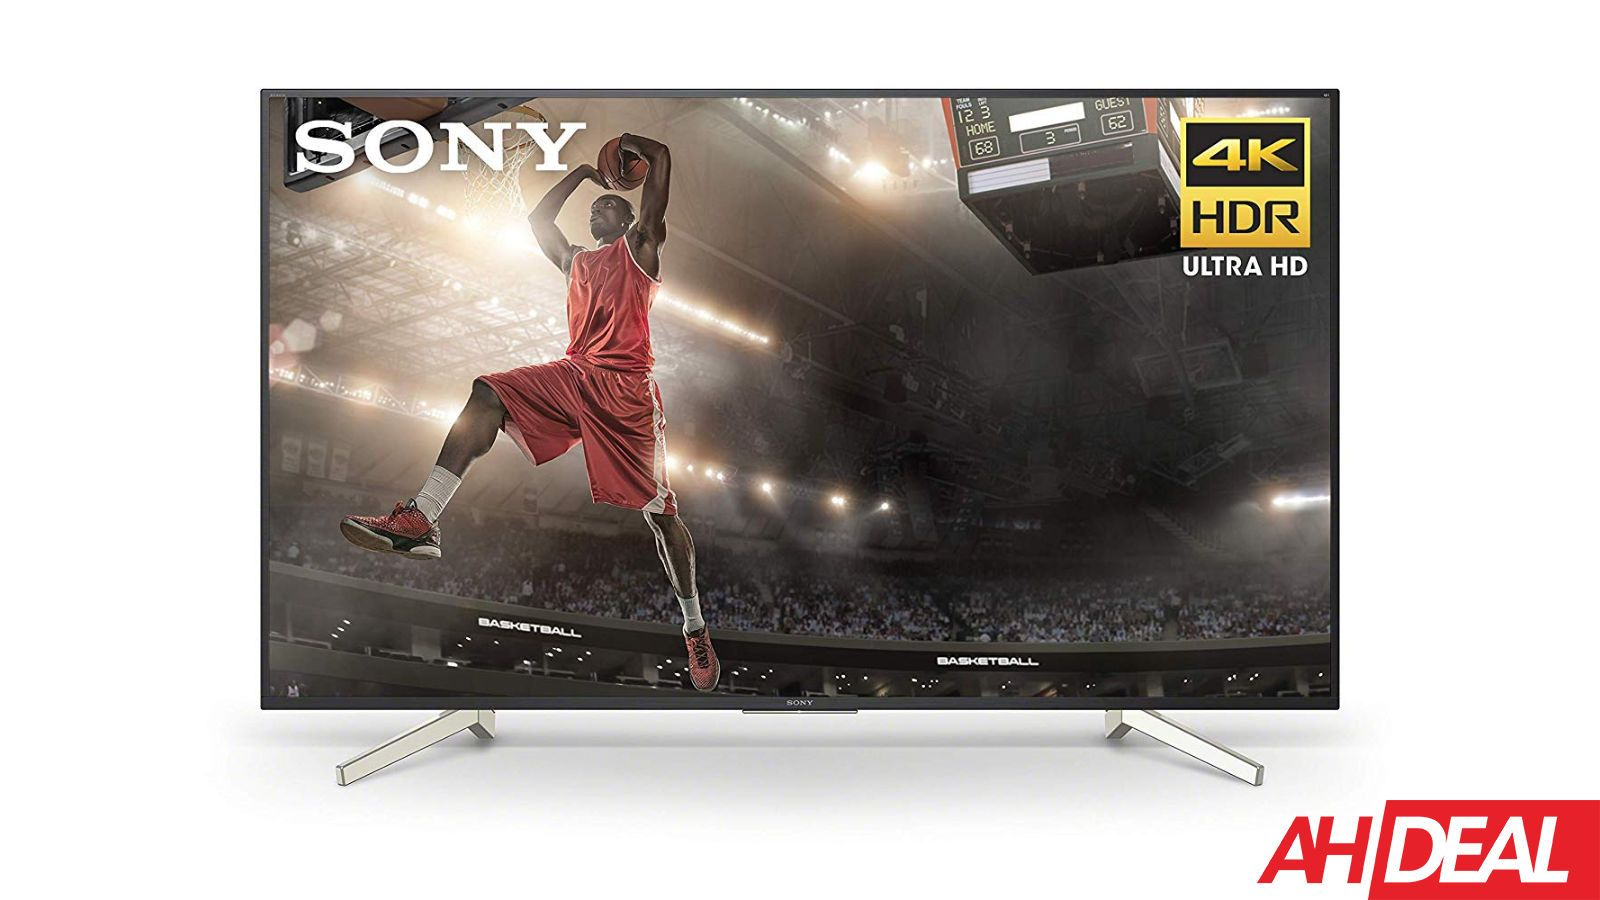 Upgrade To Sony S 60 Inch 830f 4k Android Tv For 798 Today Only